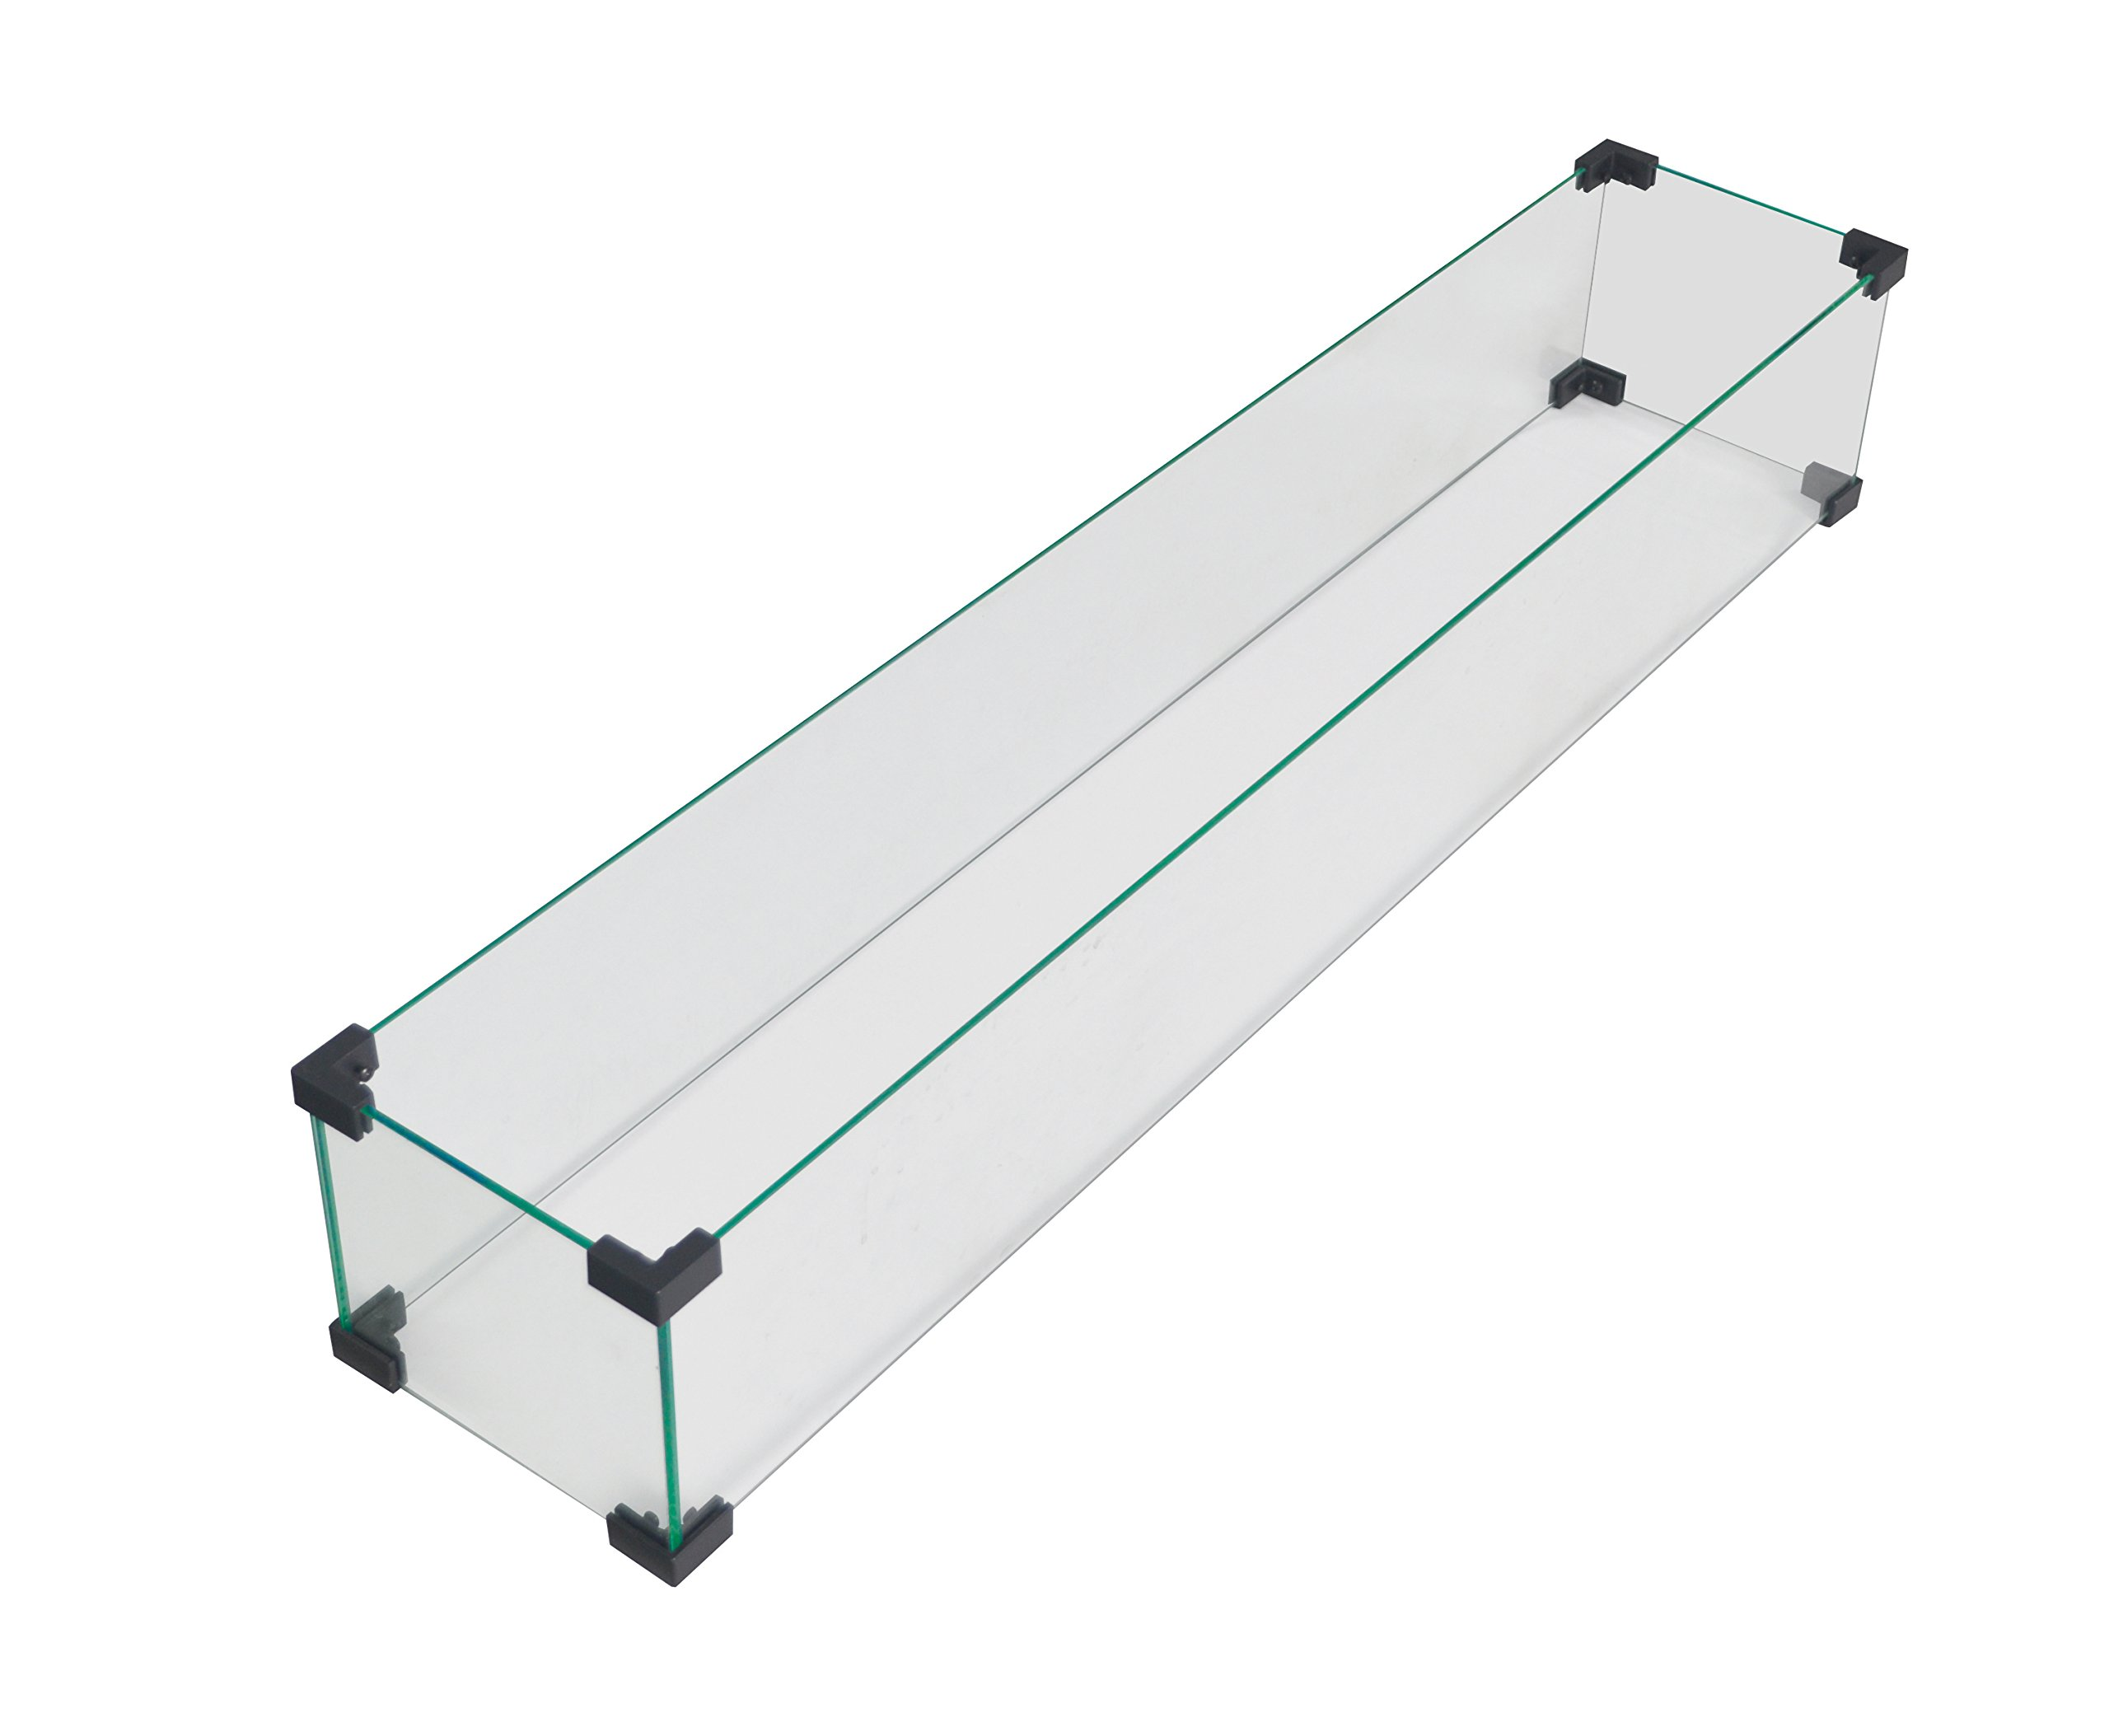 LEGACY HEATING CDFP-rw fire Table Spare Parts, Glass by LEGACY HEATING